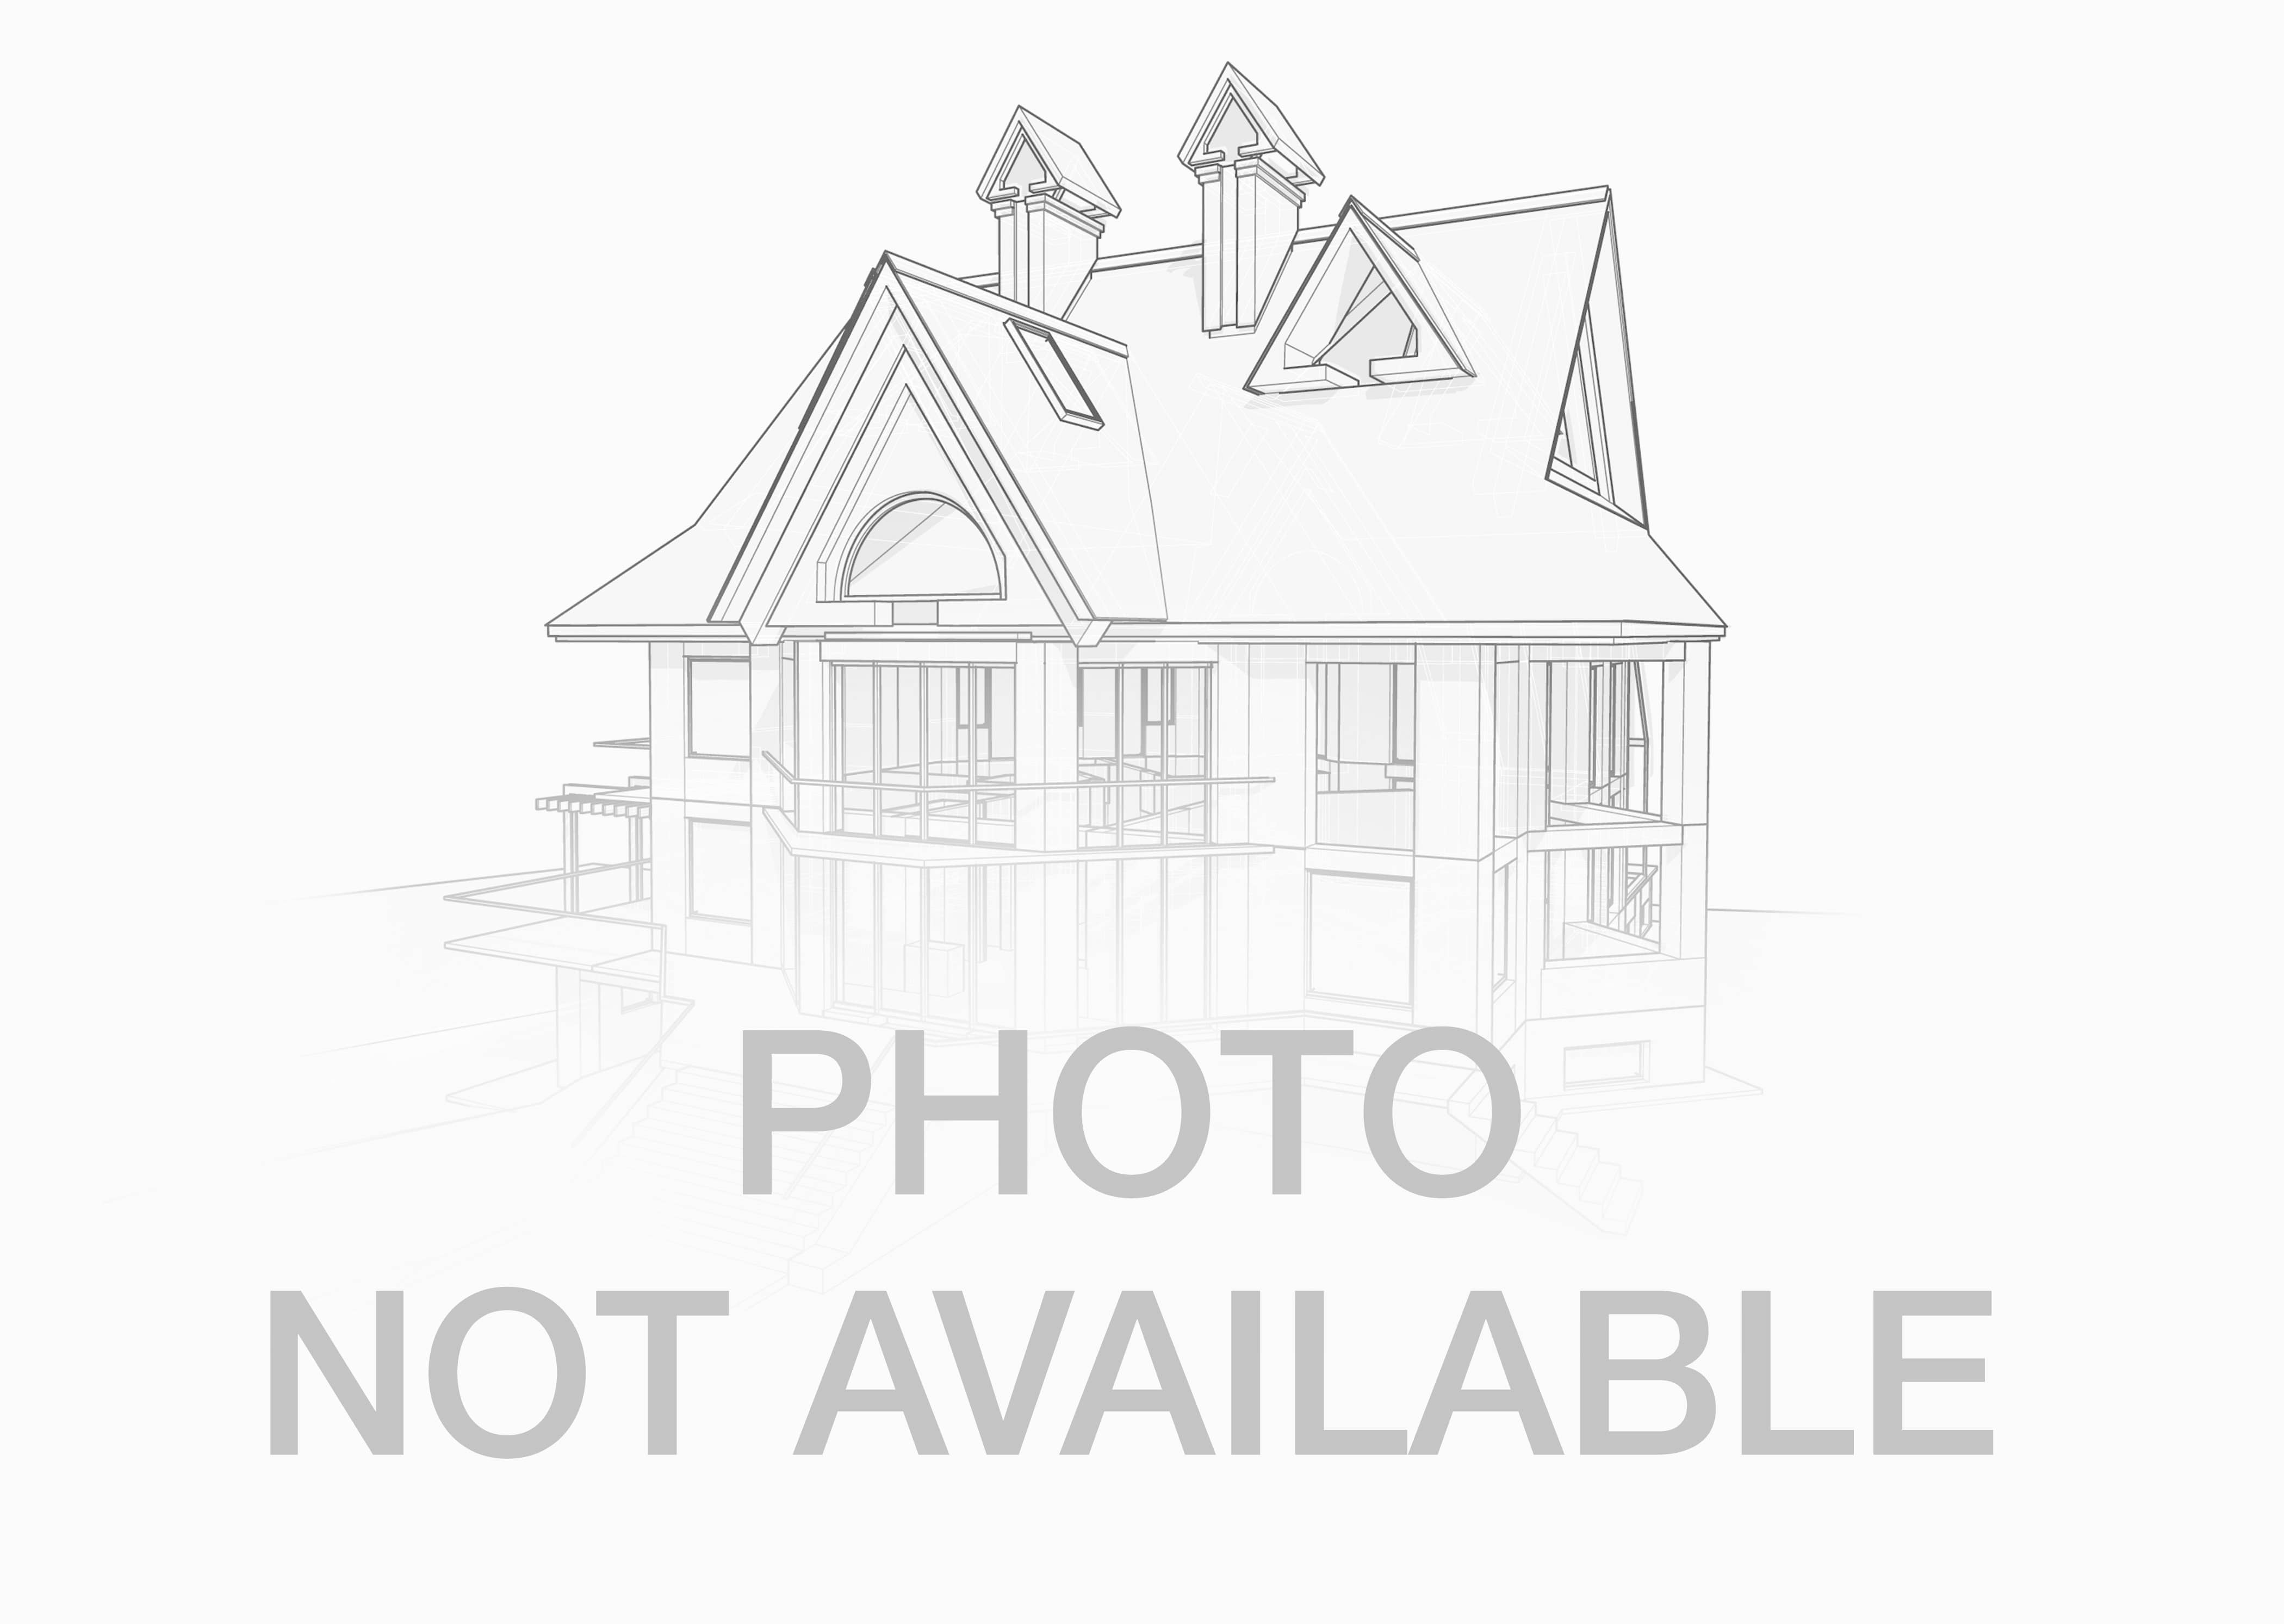 Durham Nc Homes For Sale And Real Estate